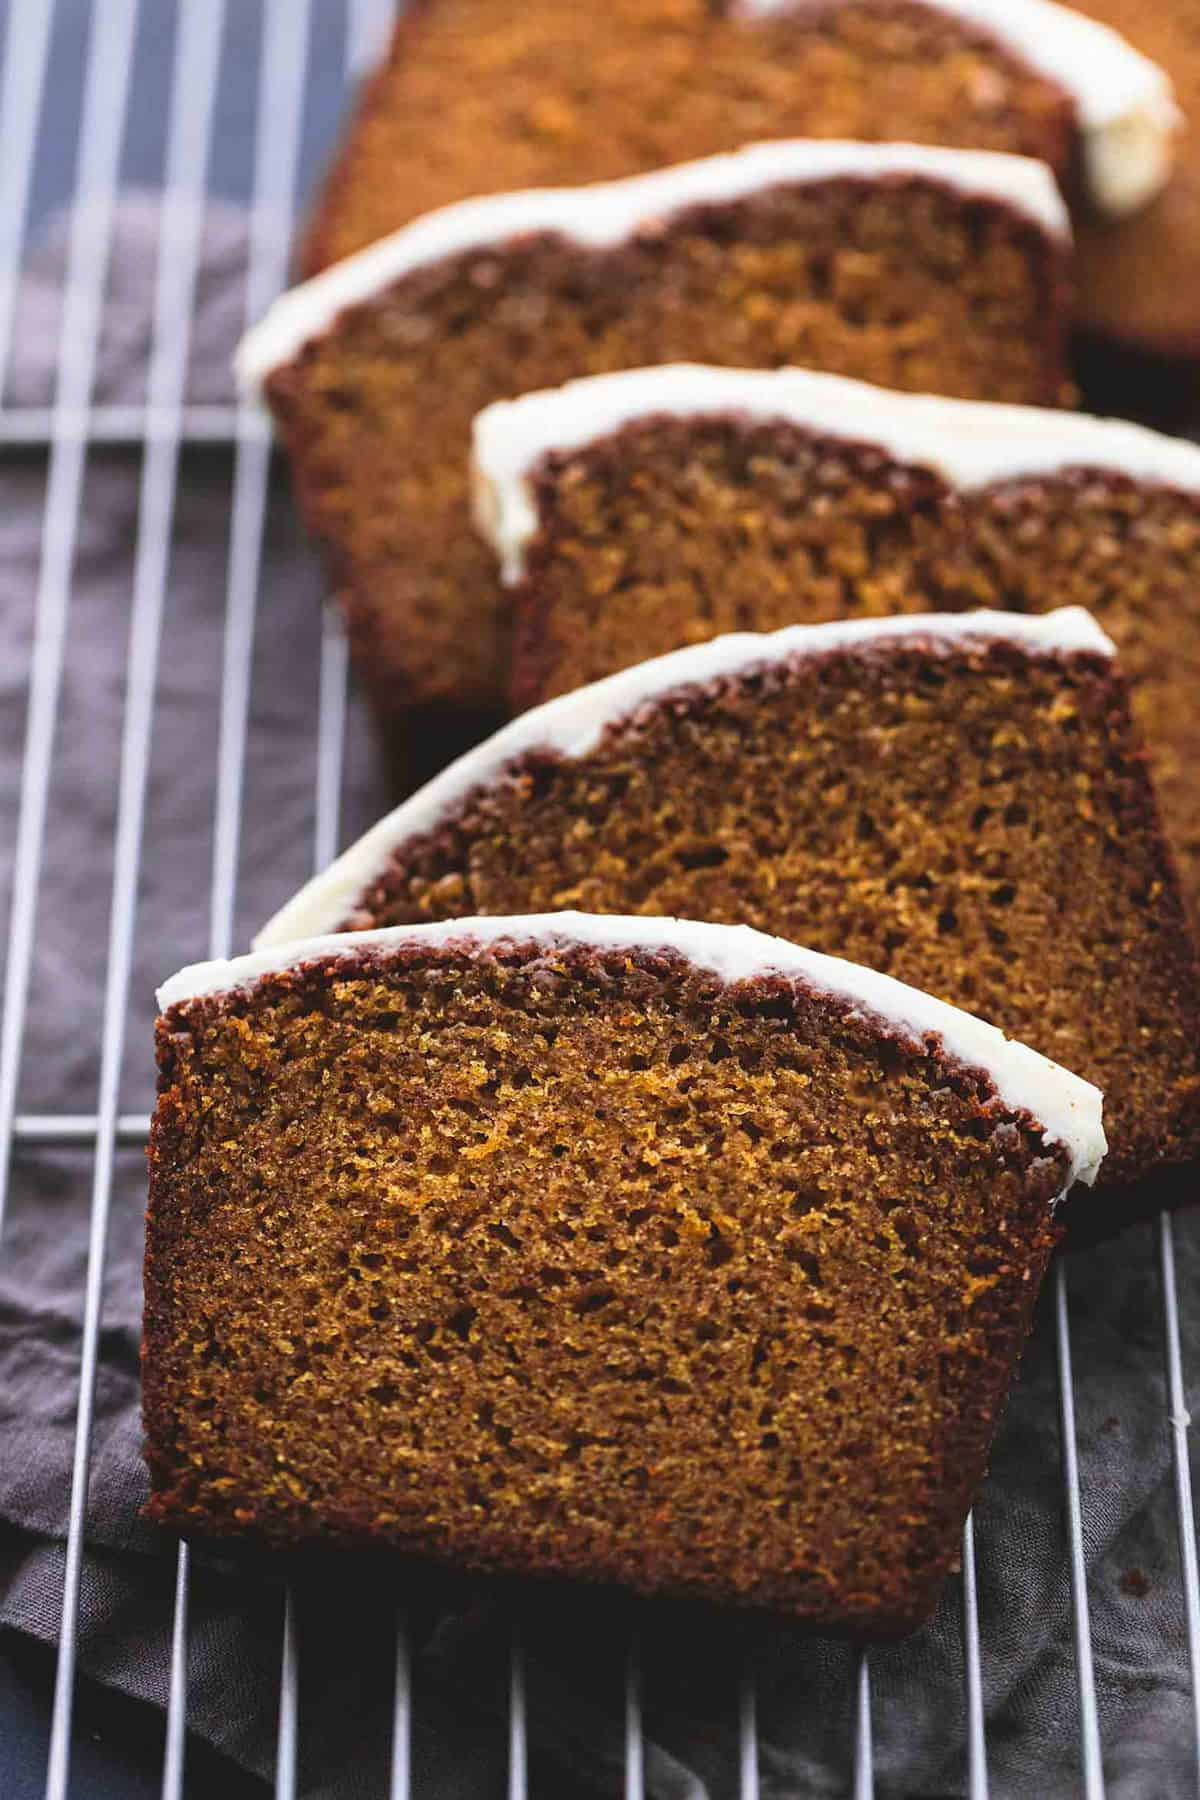 Moist and flavorful, perfectly sweetened cream cheese frosted pumpkin bread is the ultimate treat for Fall. Easy to make, with simple ingredients, and that cream cheese frosting takes this perfect pumpkin bread over the top! | lecremedelacrumb.com